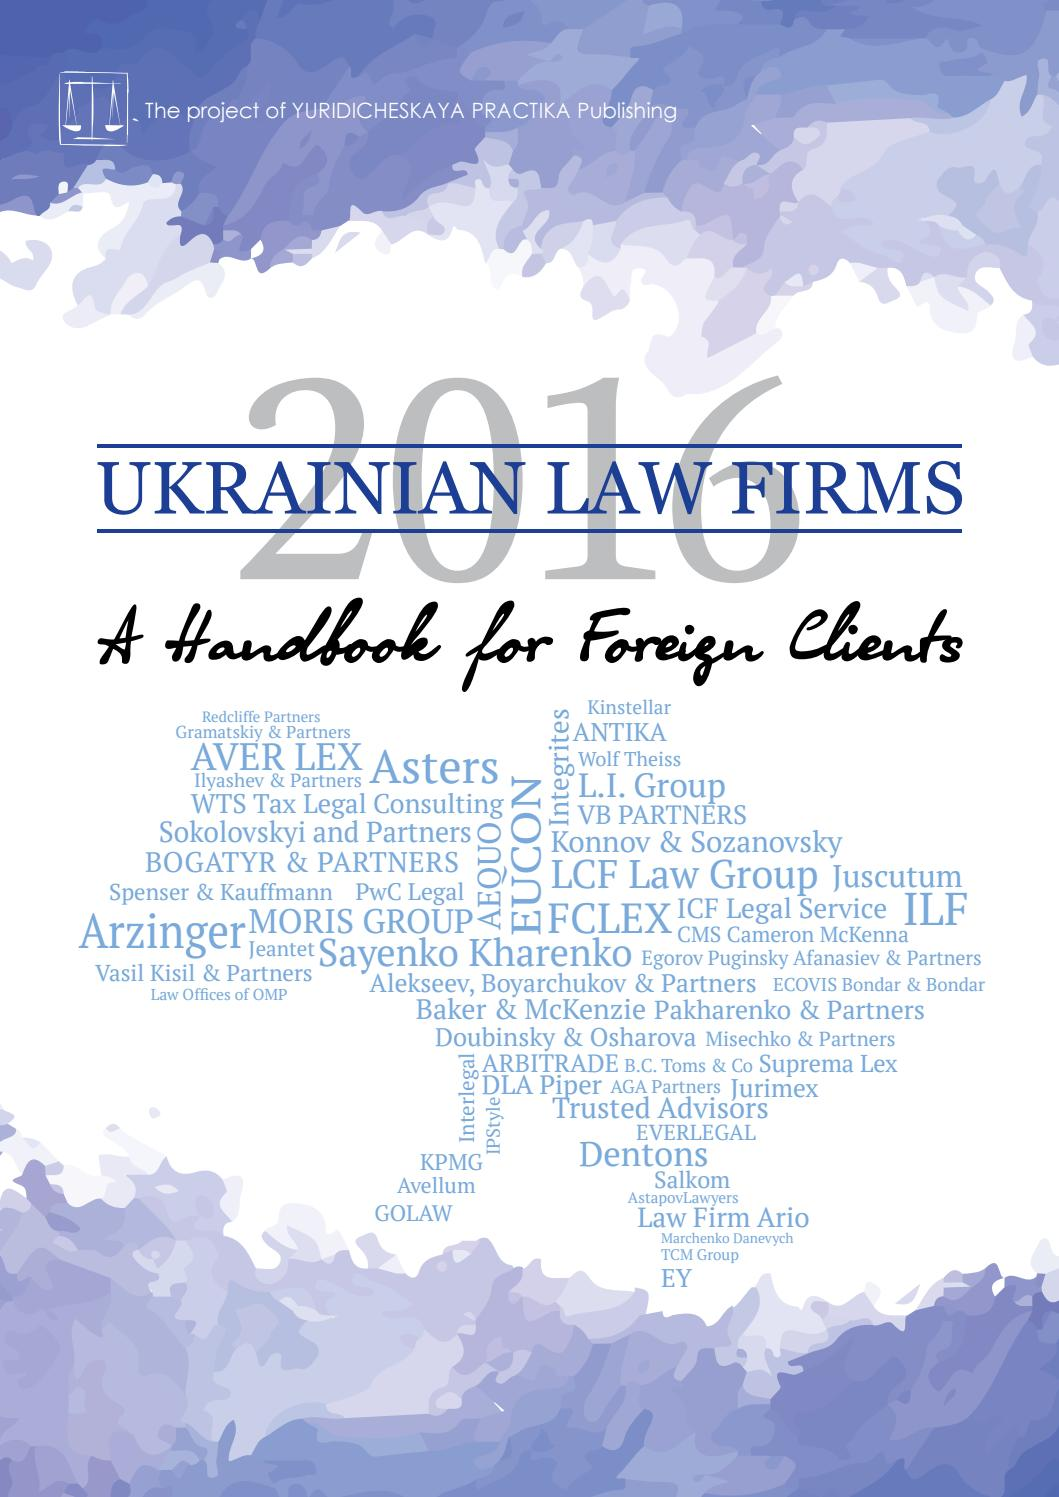 Law firms Chernivtsi and region: a selection of sites